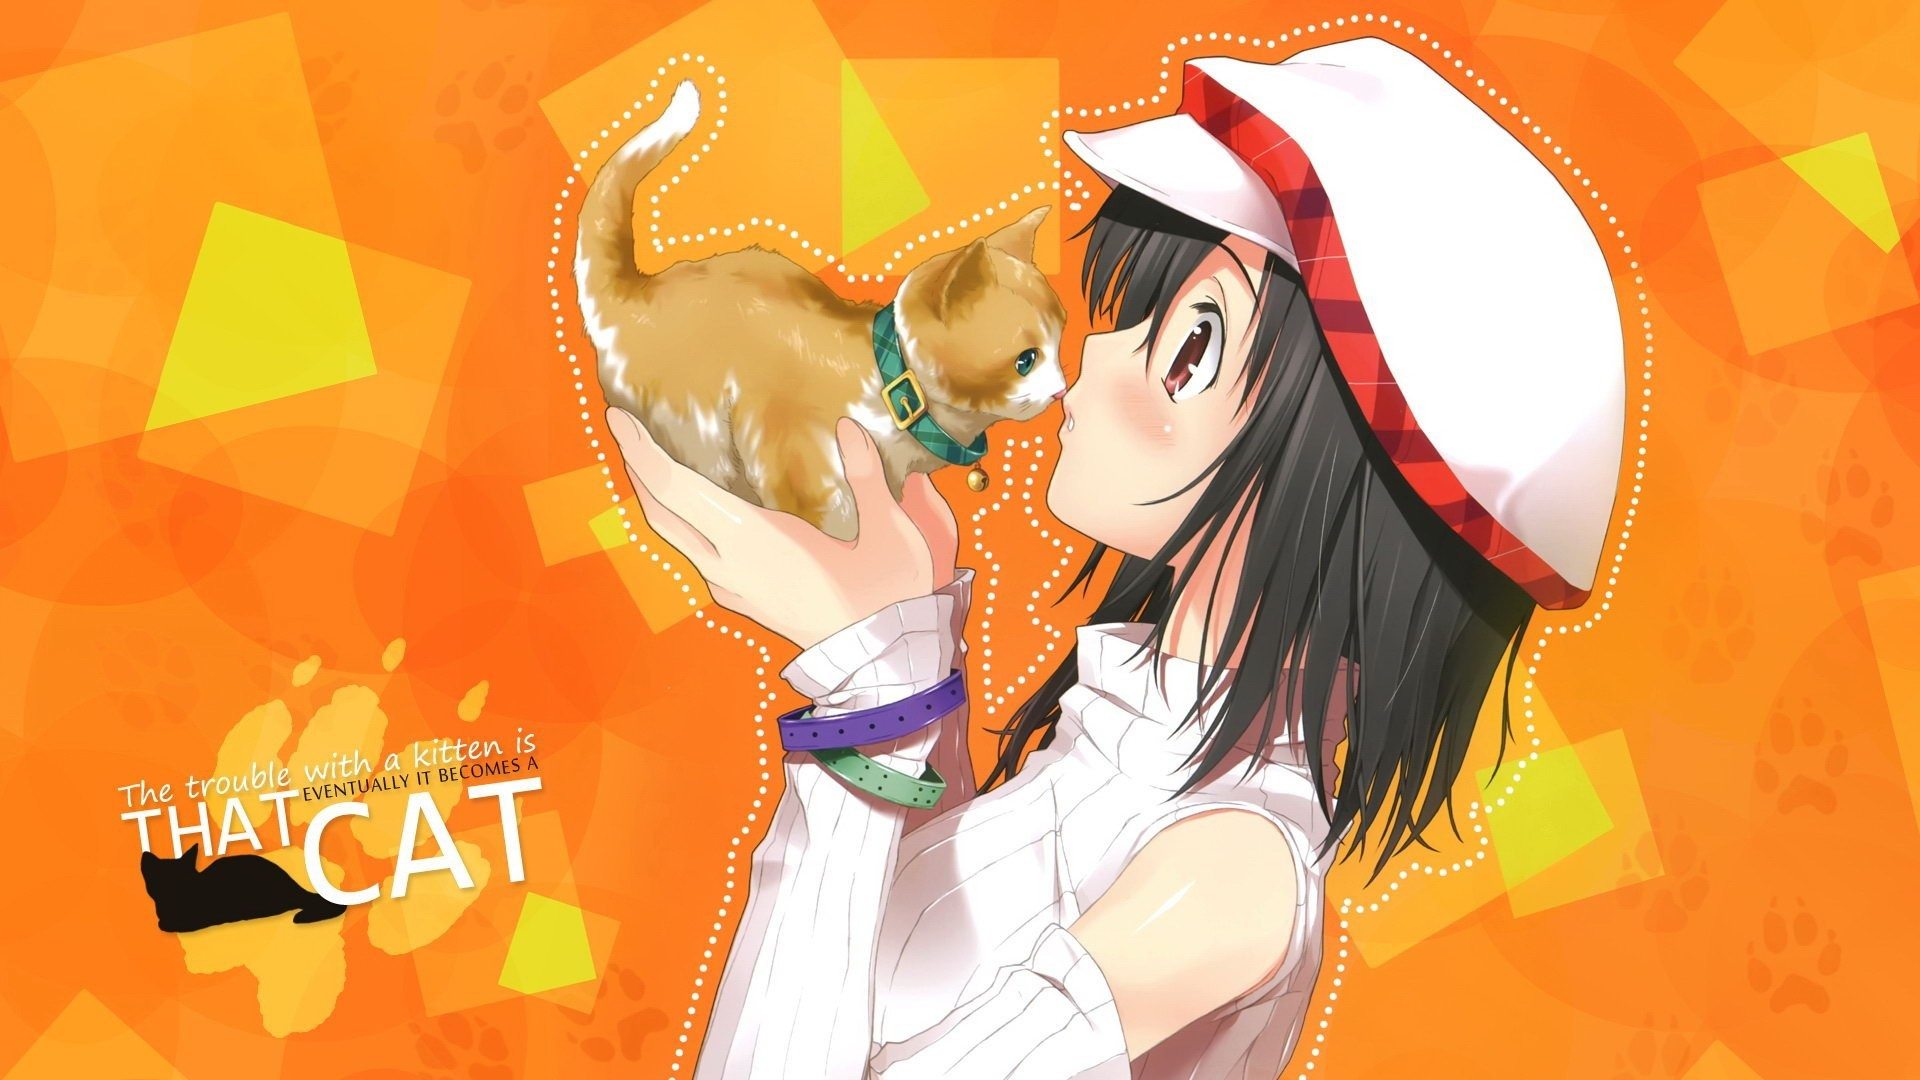 1920x1080 Anime Girl With Cat 817118 ...